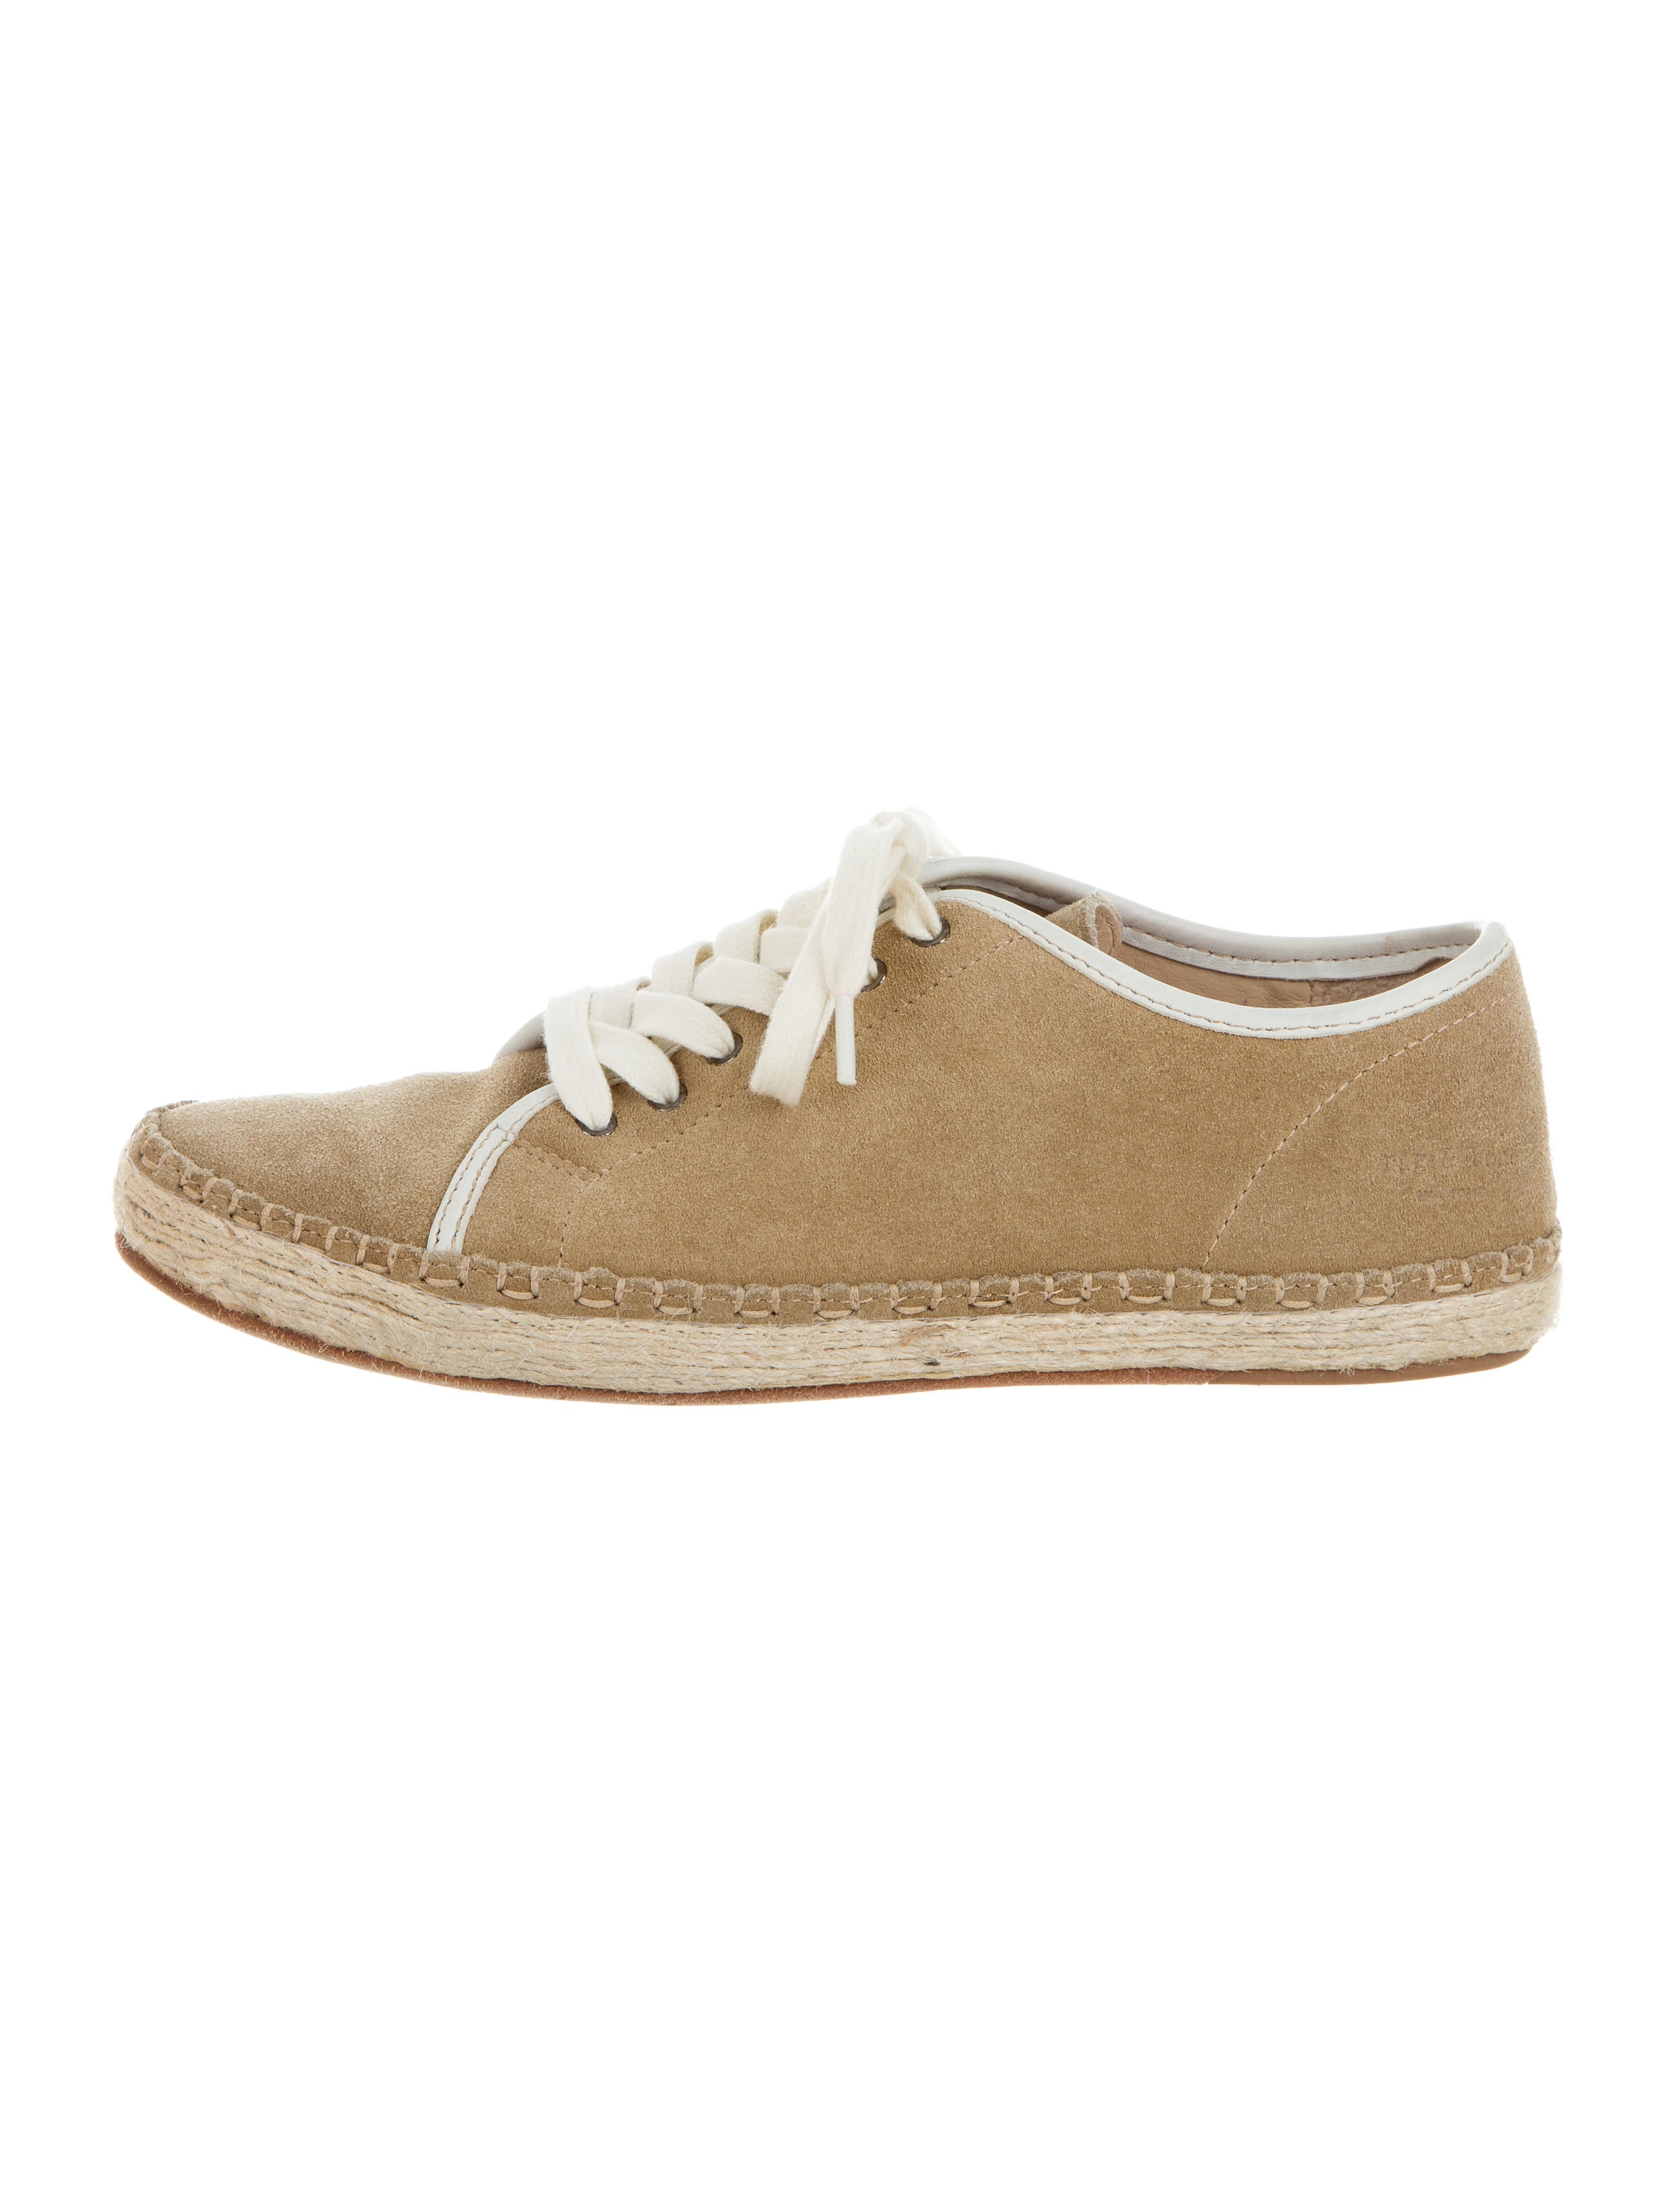 buy cheap huge surprise for sale the cheapest Rag & Bone Baylor Espadrille Sneakers fast delivery online e6xxxyUcvU